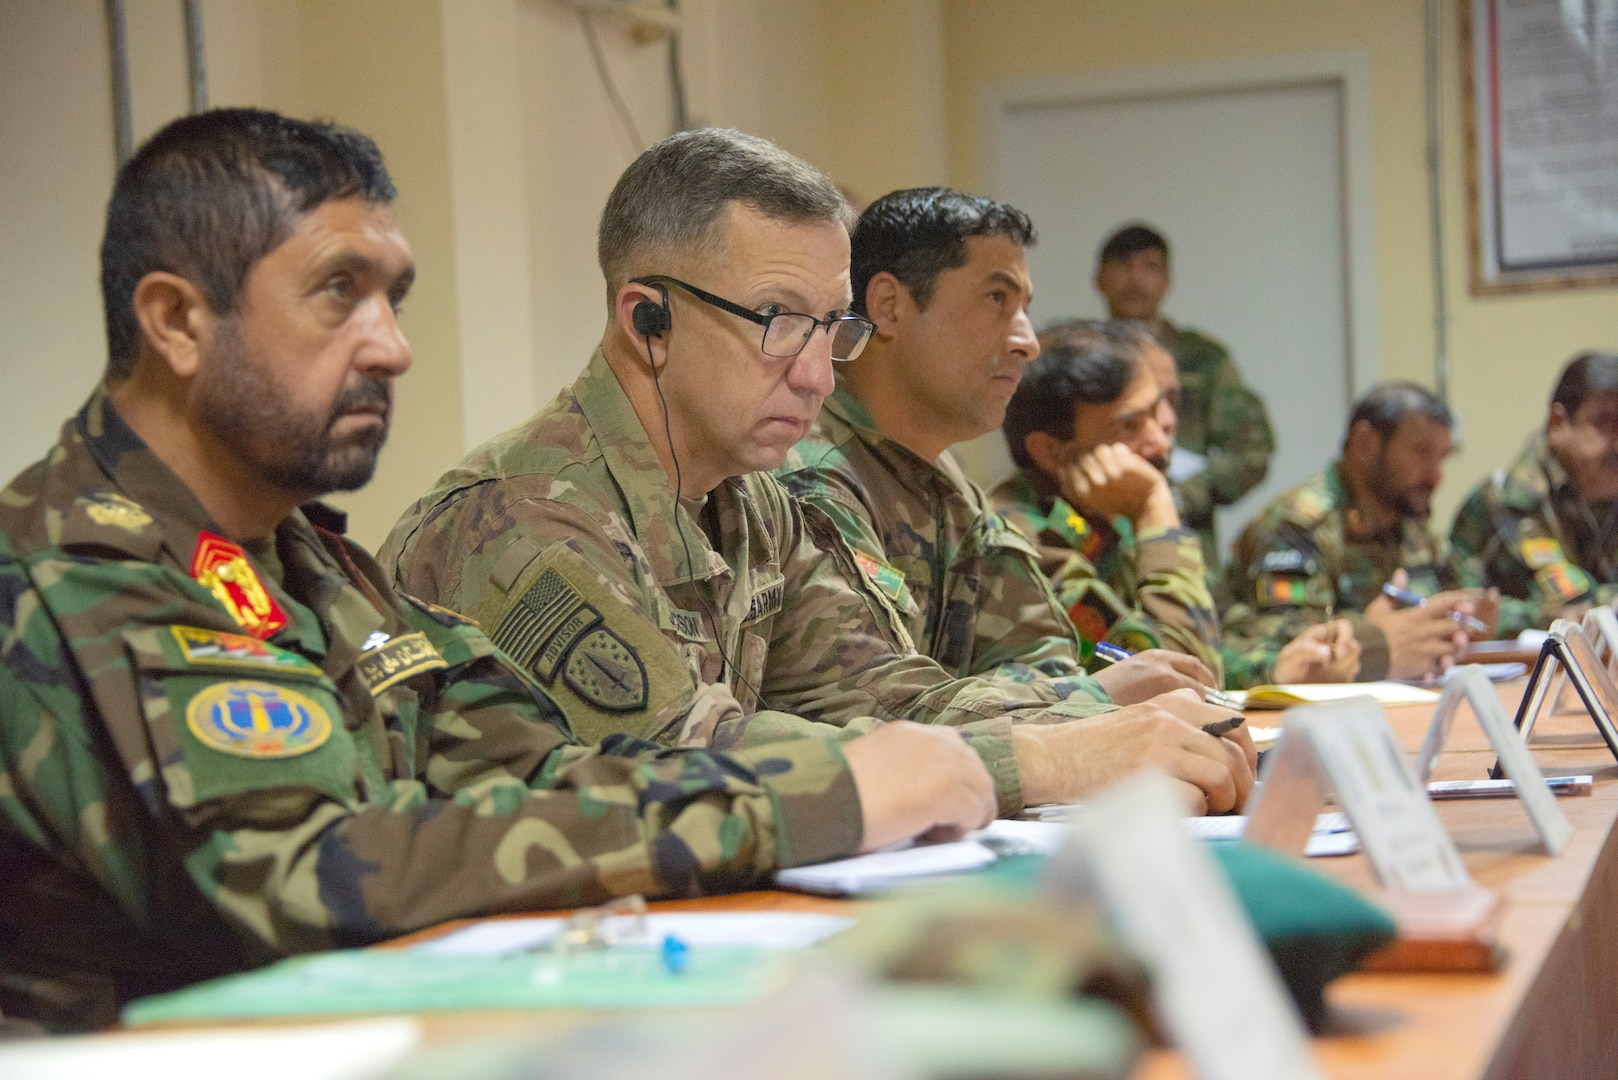 Brig. Gen. Scott Jackson, left center, commander of the 1st Security Force Assistance Brigade, attends an Afghan-led battle update briefing Sept. 18, 2018. Jackson and other advisors in his brigade often attend the briefings near his command headquarters at Advising Platform Lightning to offer their insight to counterparts. (Photo Credit: Sean Kimmons)